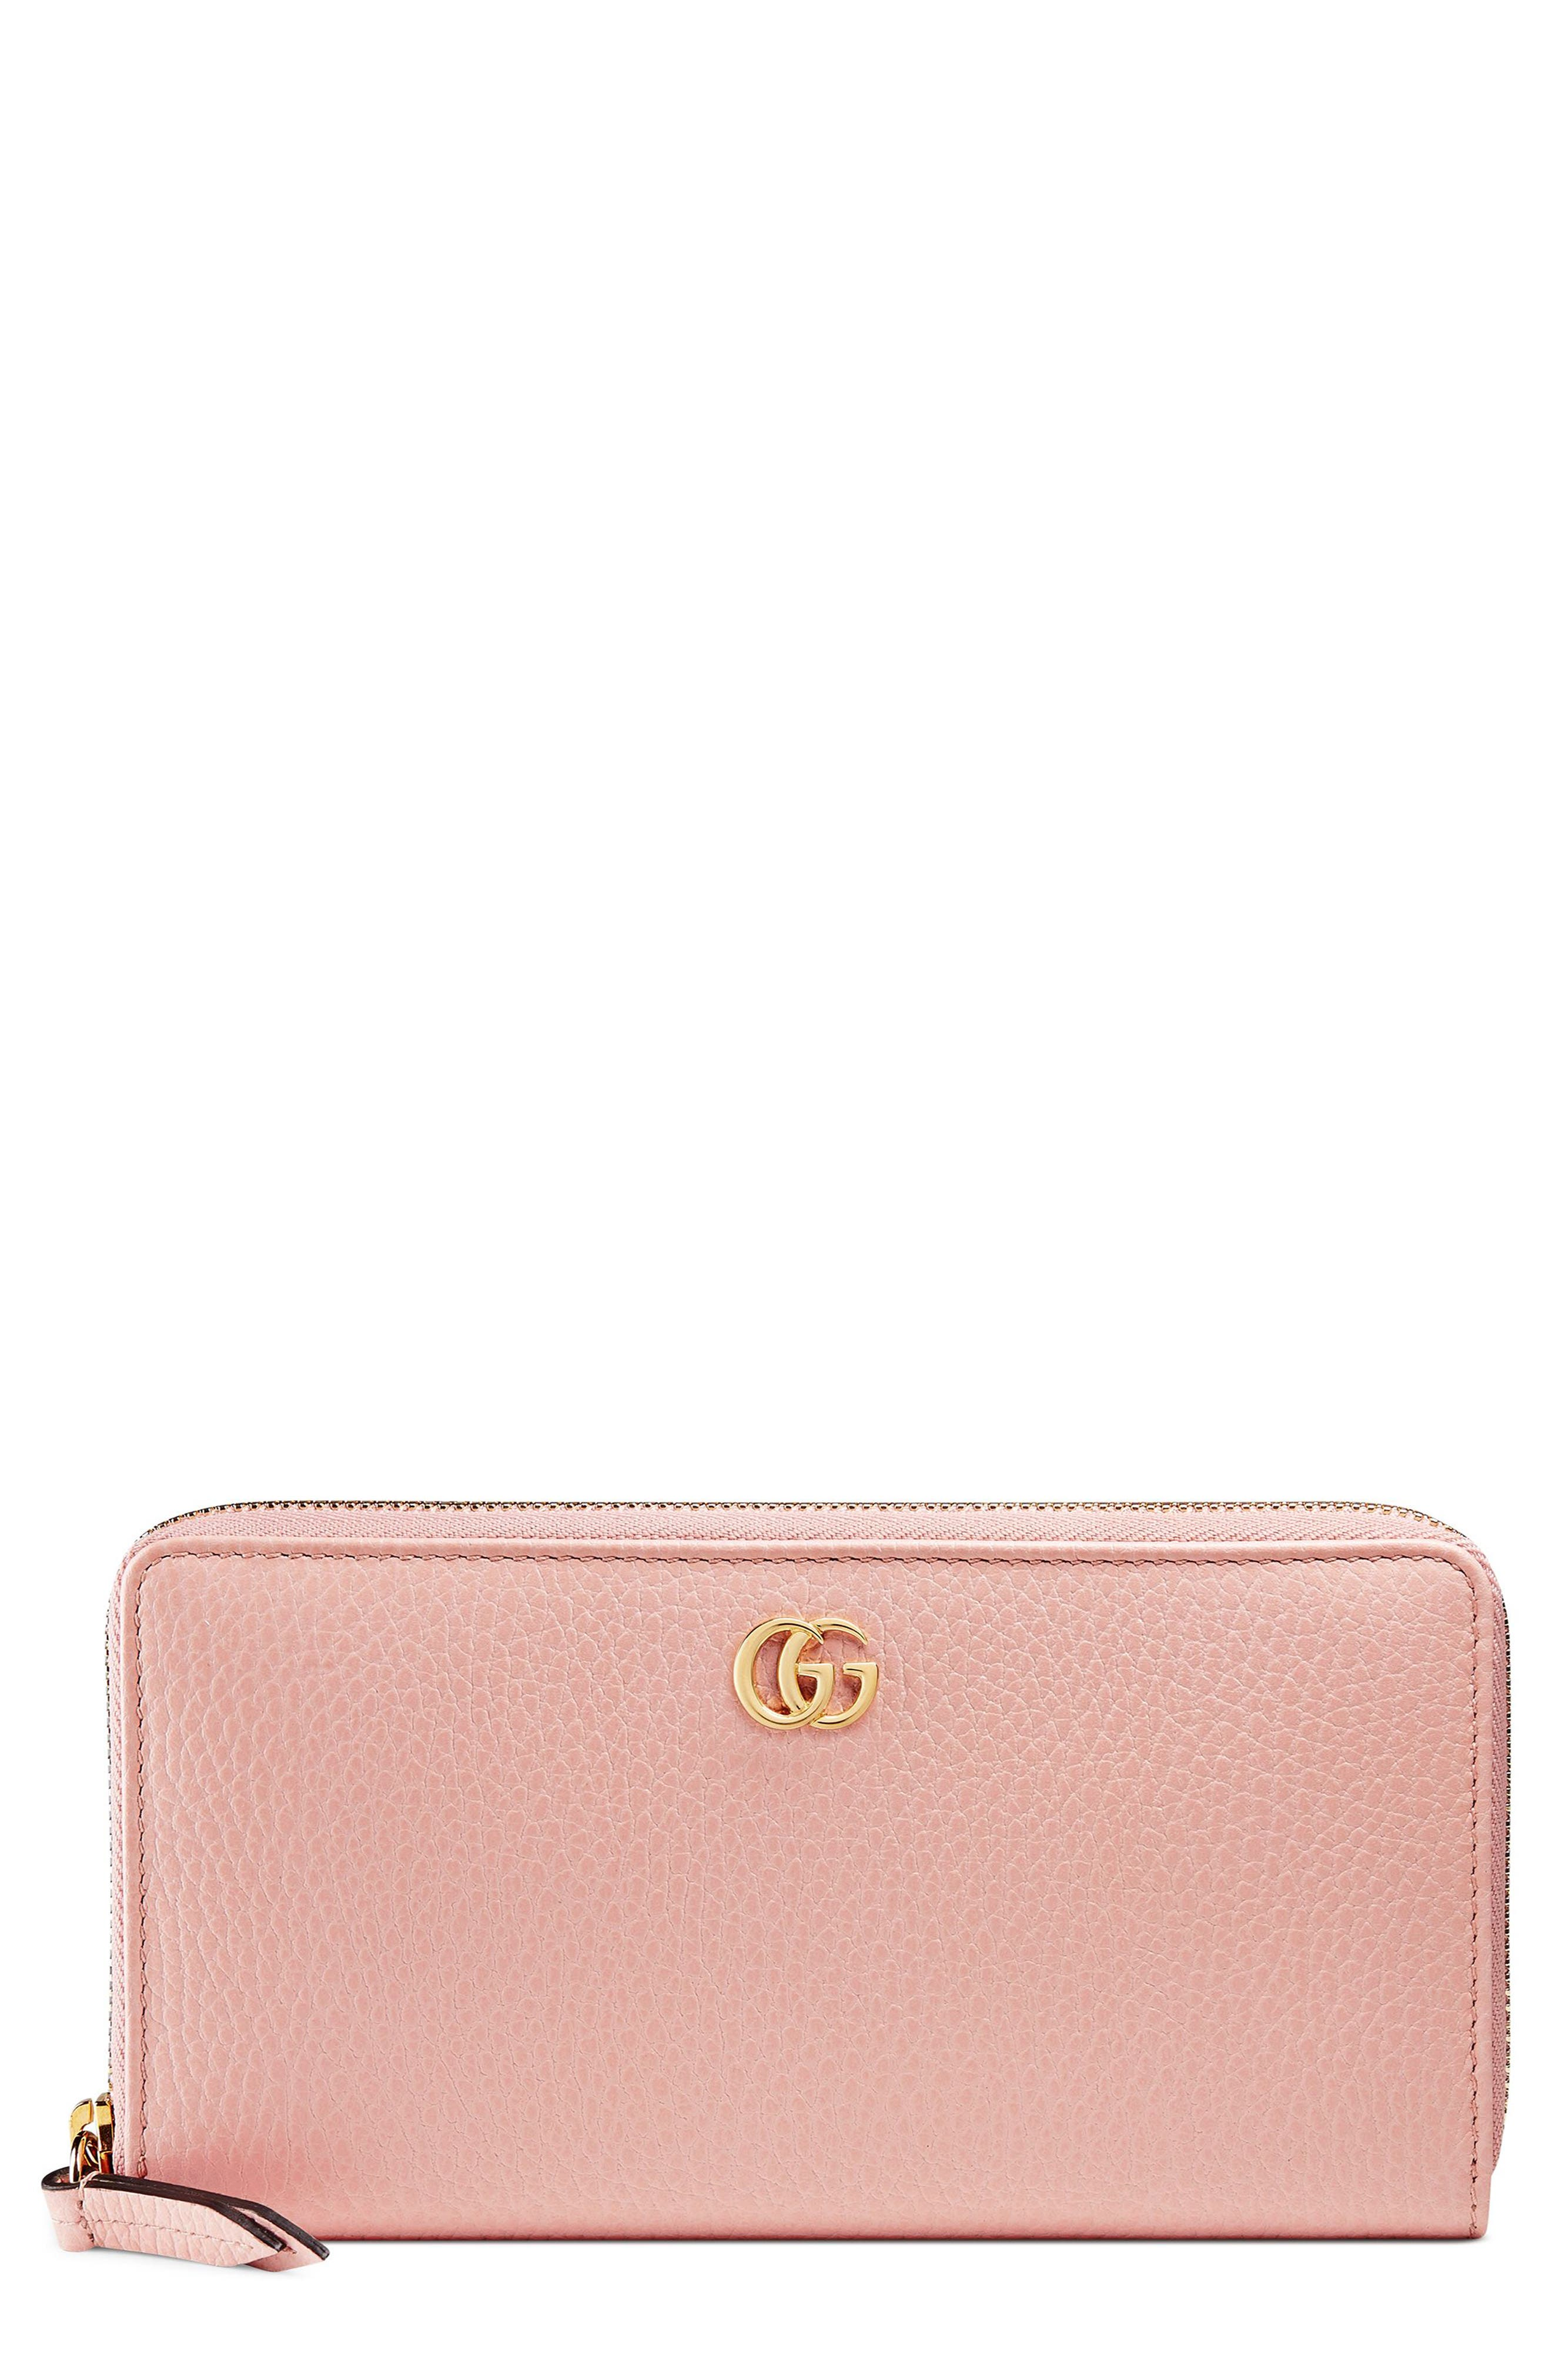 Petite Marmont Leather Zip Around Wallet,                             Main thumbnail 1, color,                             650